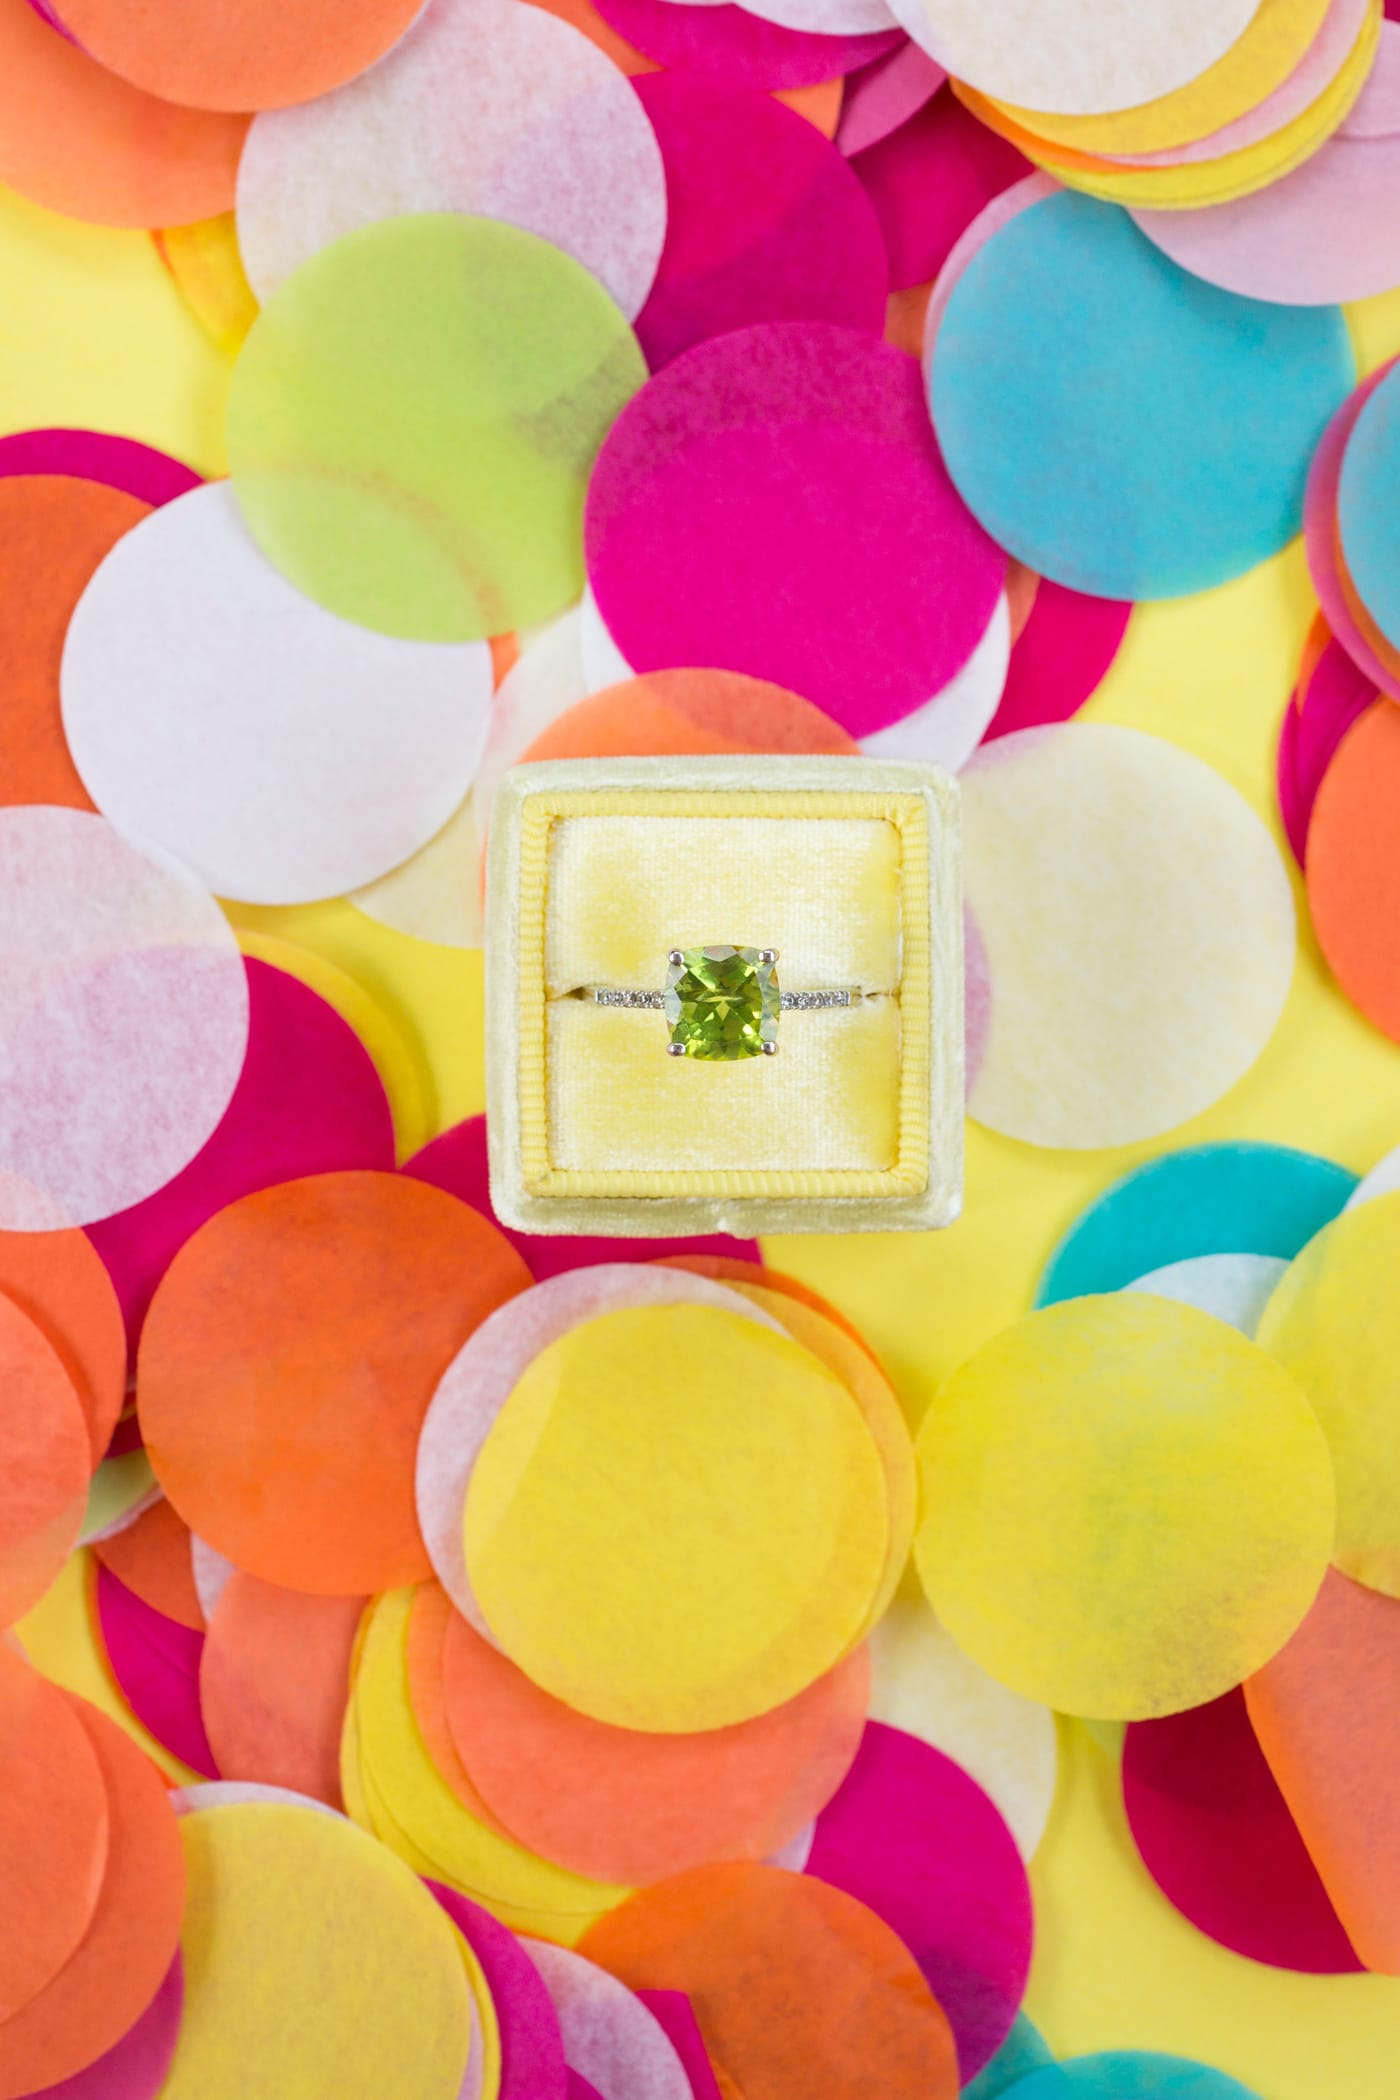 Punchy Citrus and Confetti-Themed Styled Shoot Featuring Blaire by Sottero & Midgley.